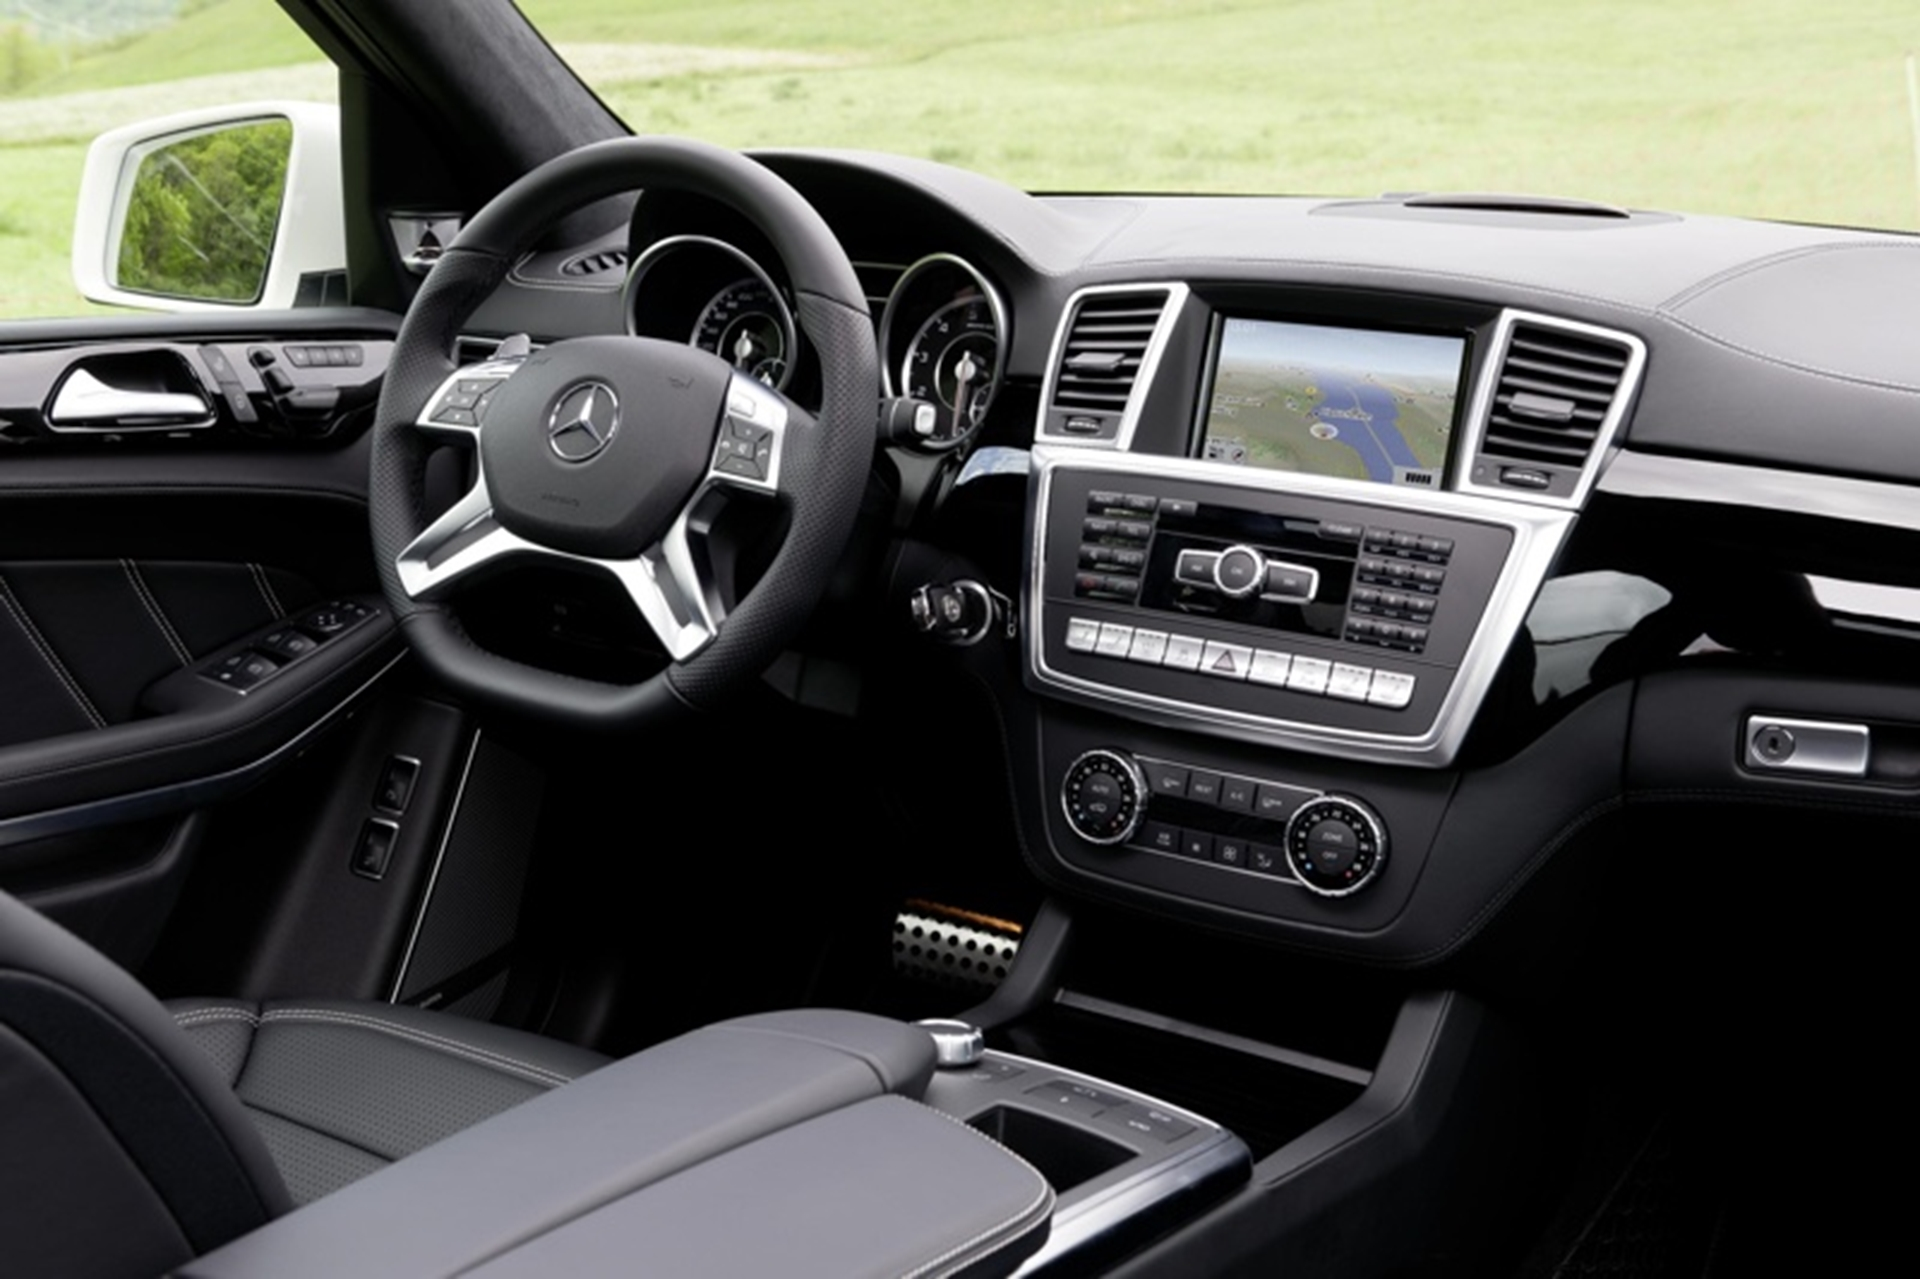 Mercedes-Benz GL 63 AMG Interior